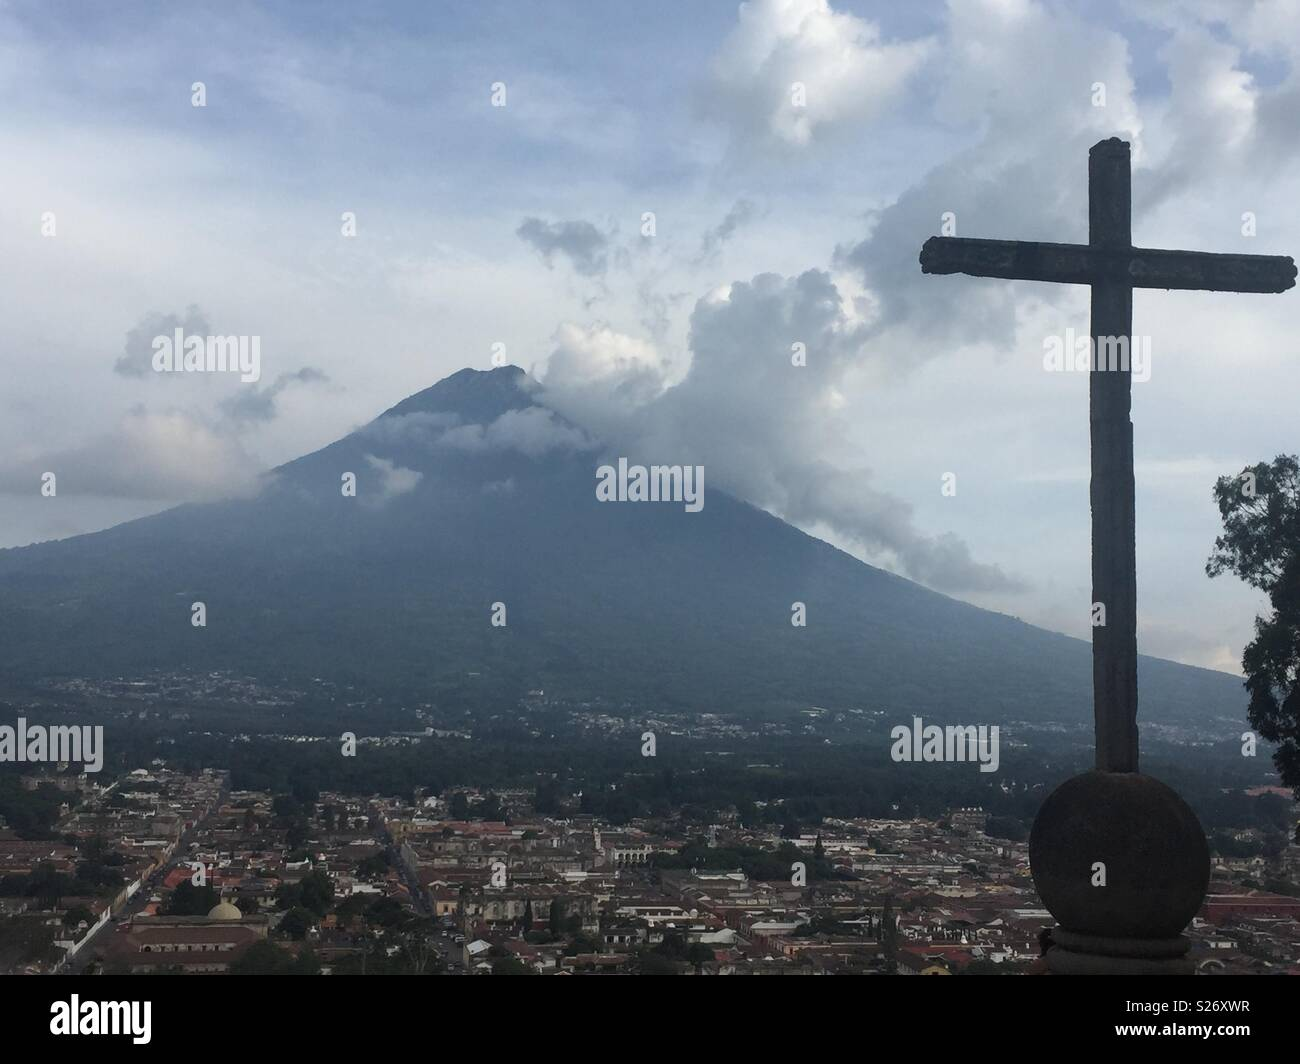 Sitting at Cerro de la Cruz view point, watching the clouds and ash clouds drift across the Volcan Agua, from the recent Volcan Fuego eruption. - Stock Image